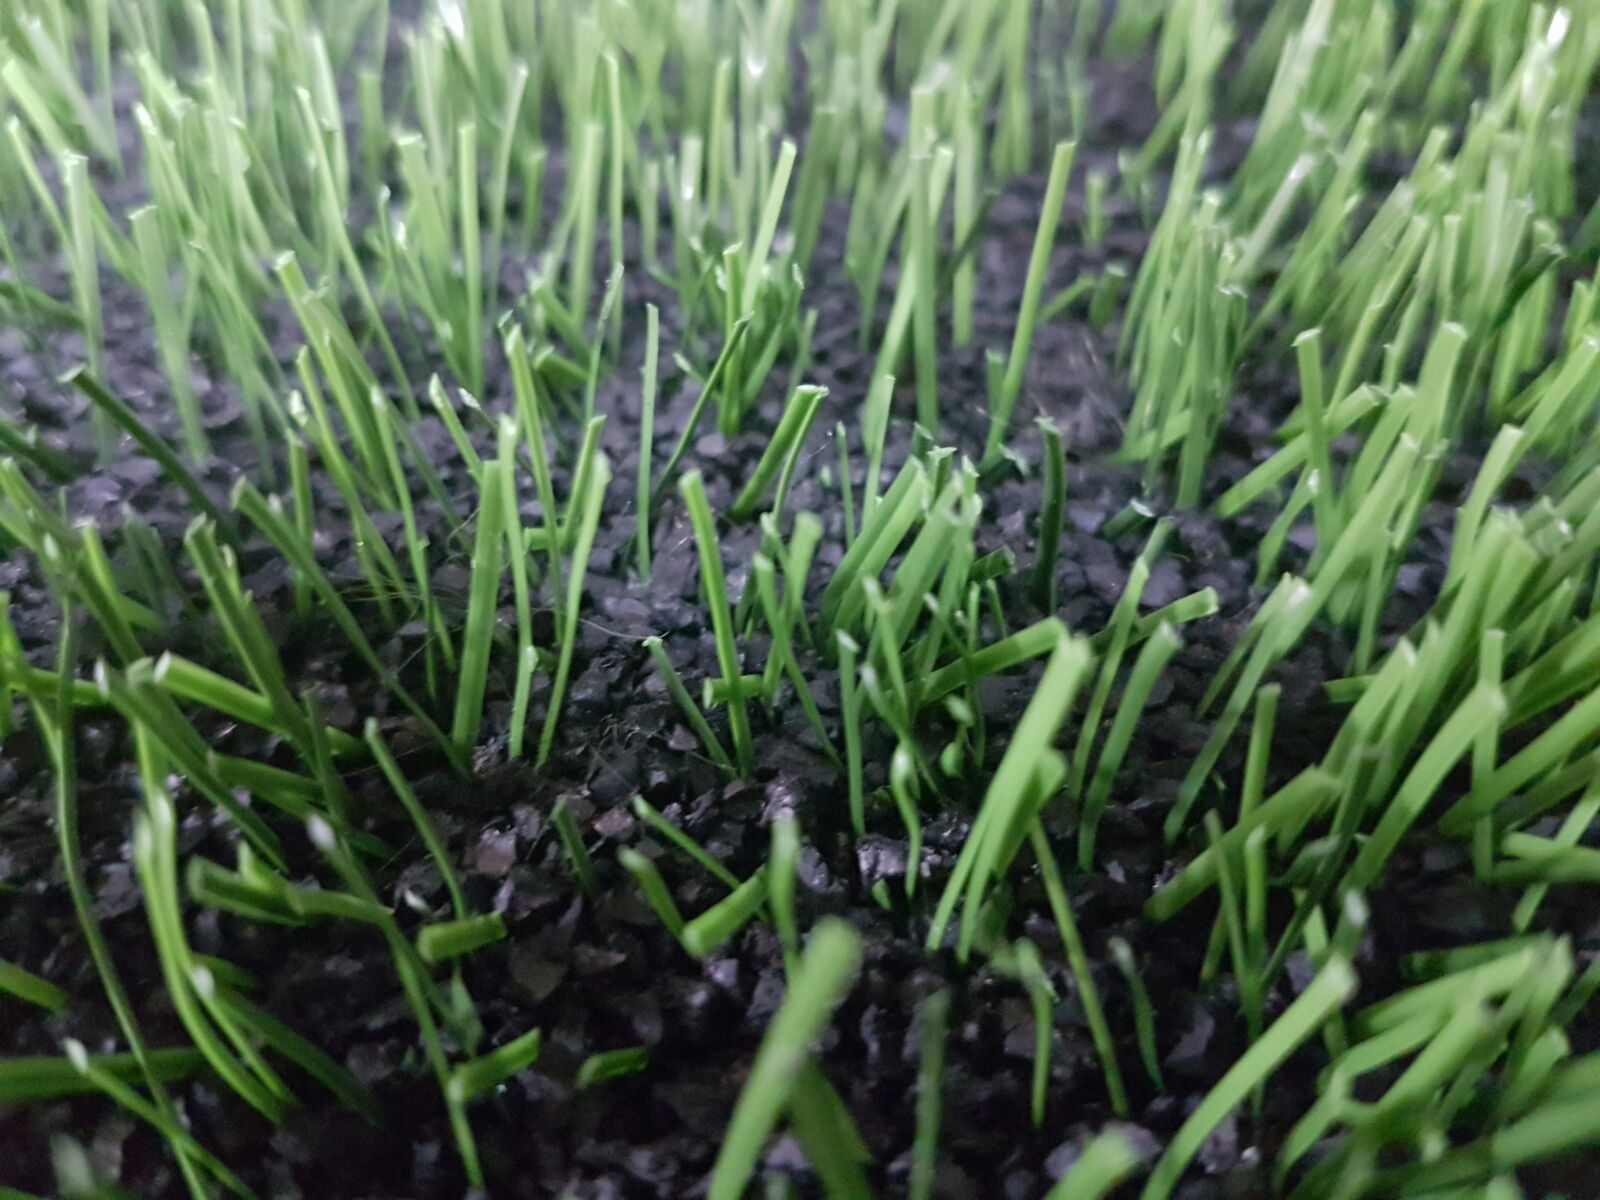 SBR rubber granules within the artificial turf